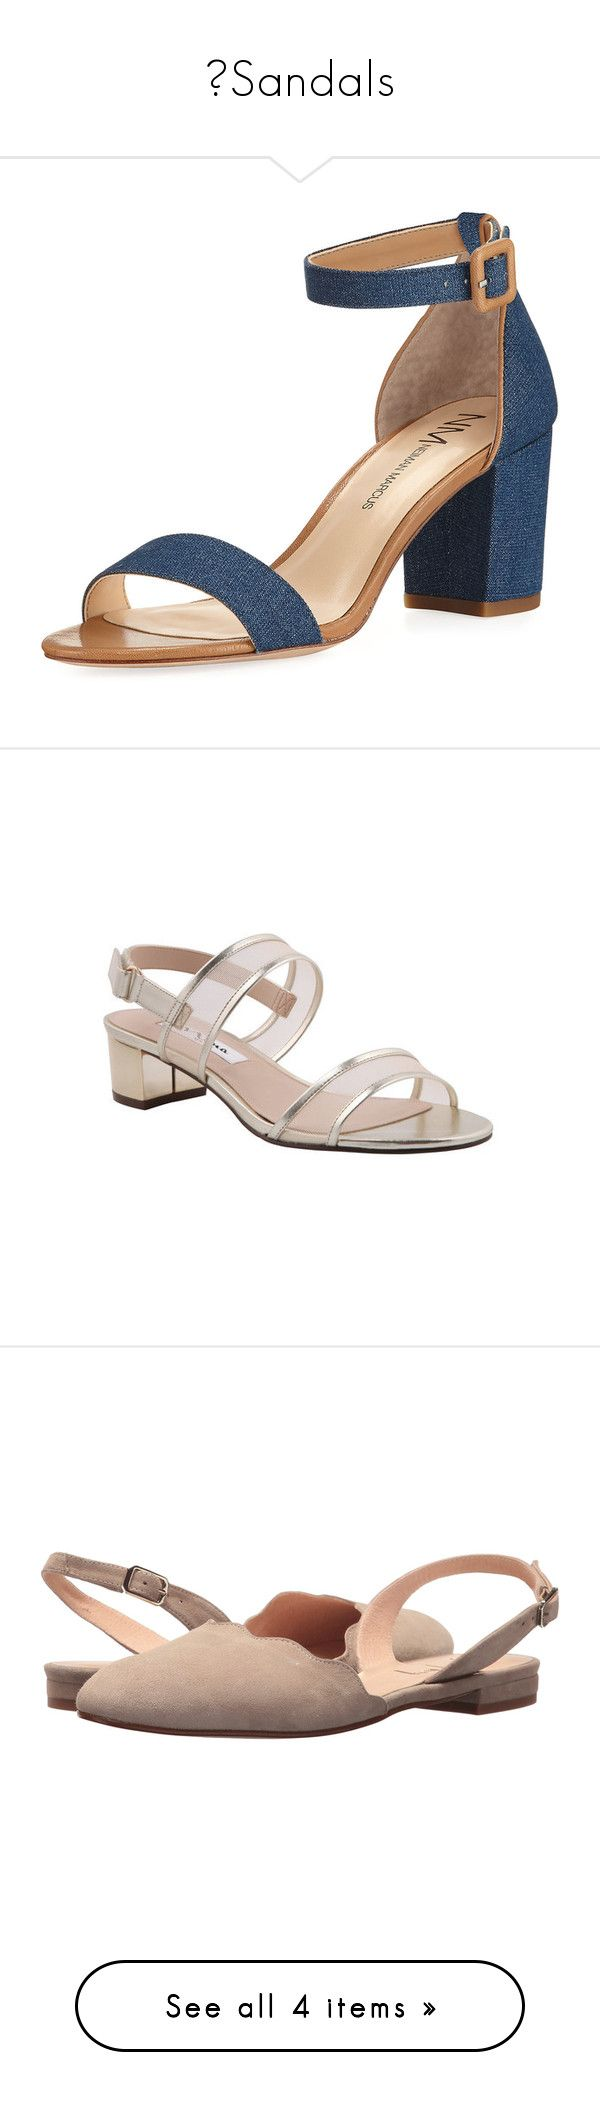 """👡Sandals"" by izzystarsparkle ❤ liked on Polyvore featuring shoes, sandals, heels, blue, block heel ankle strap sandals, blue heeled sandals, open toe sandals, denim sandals, open toe heel sandals and casual"